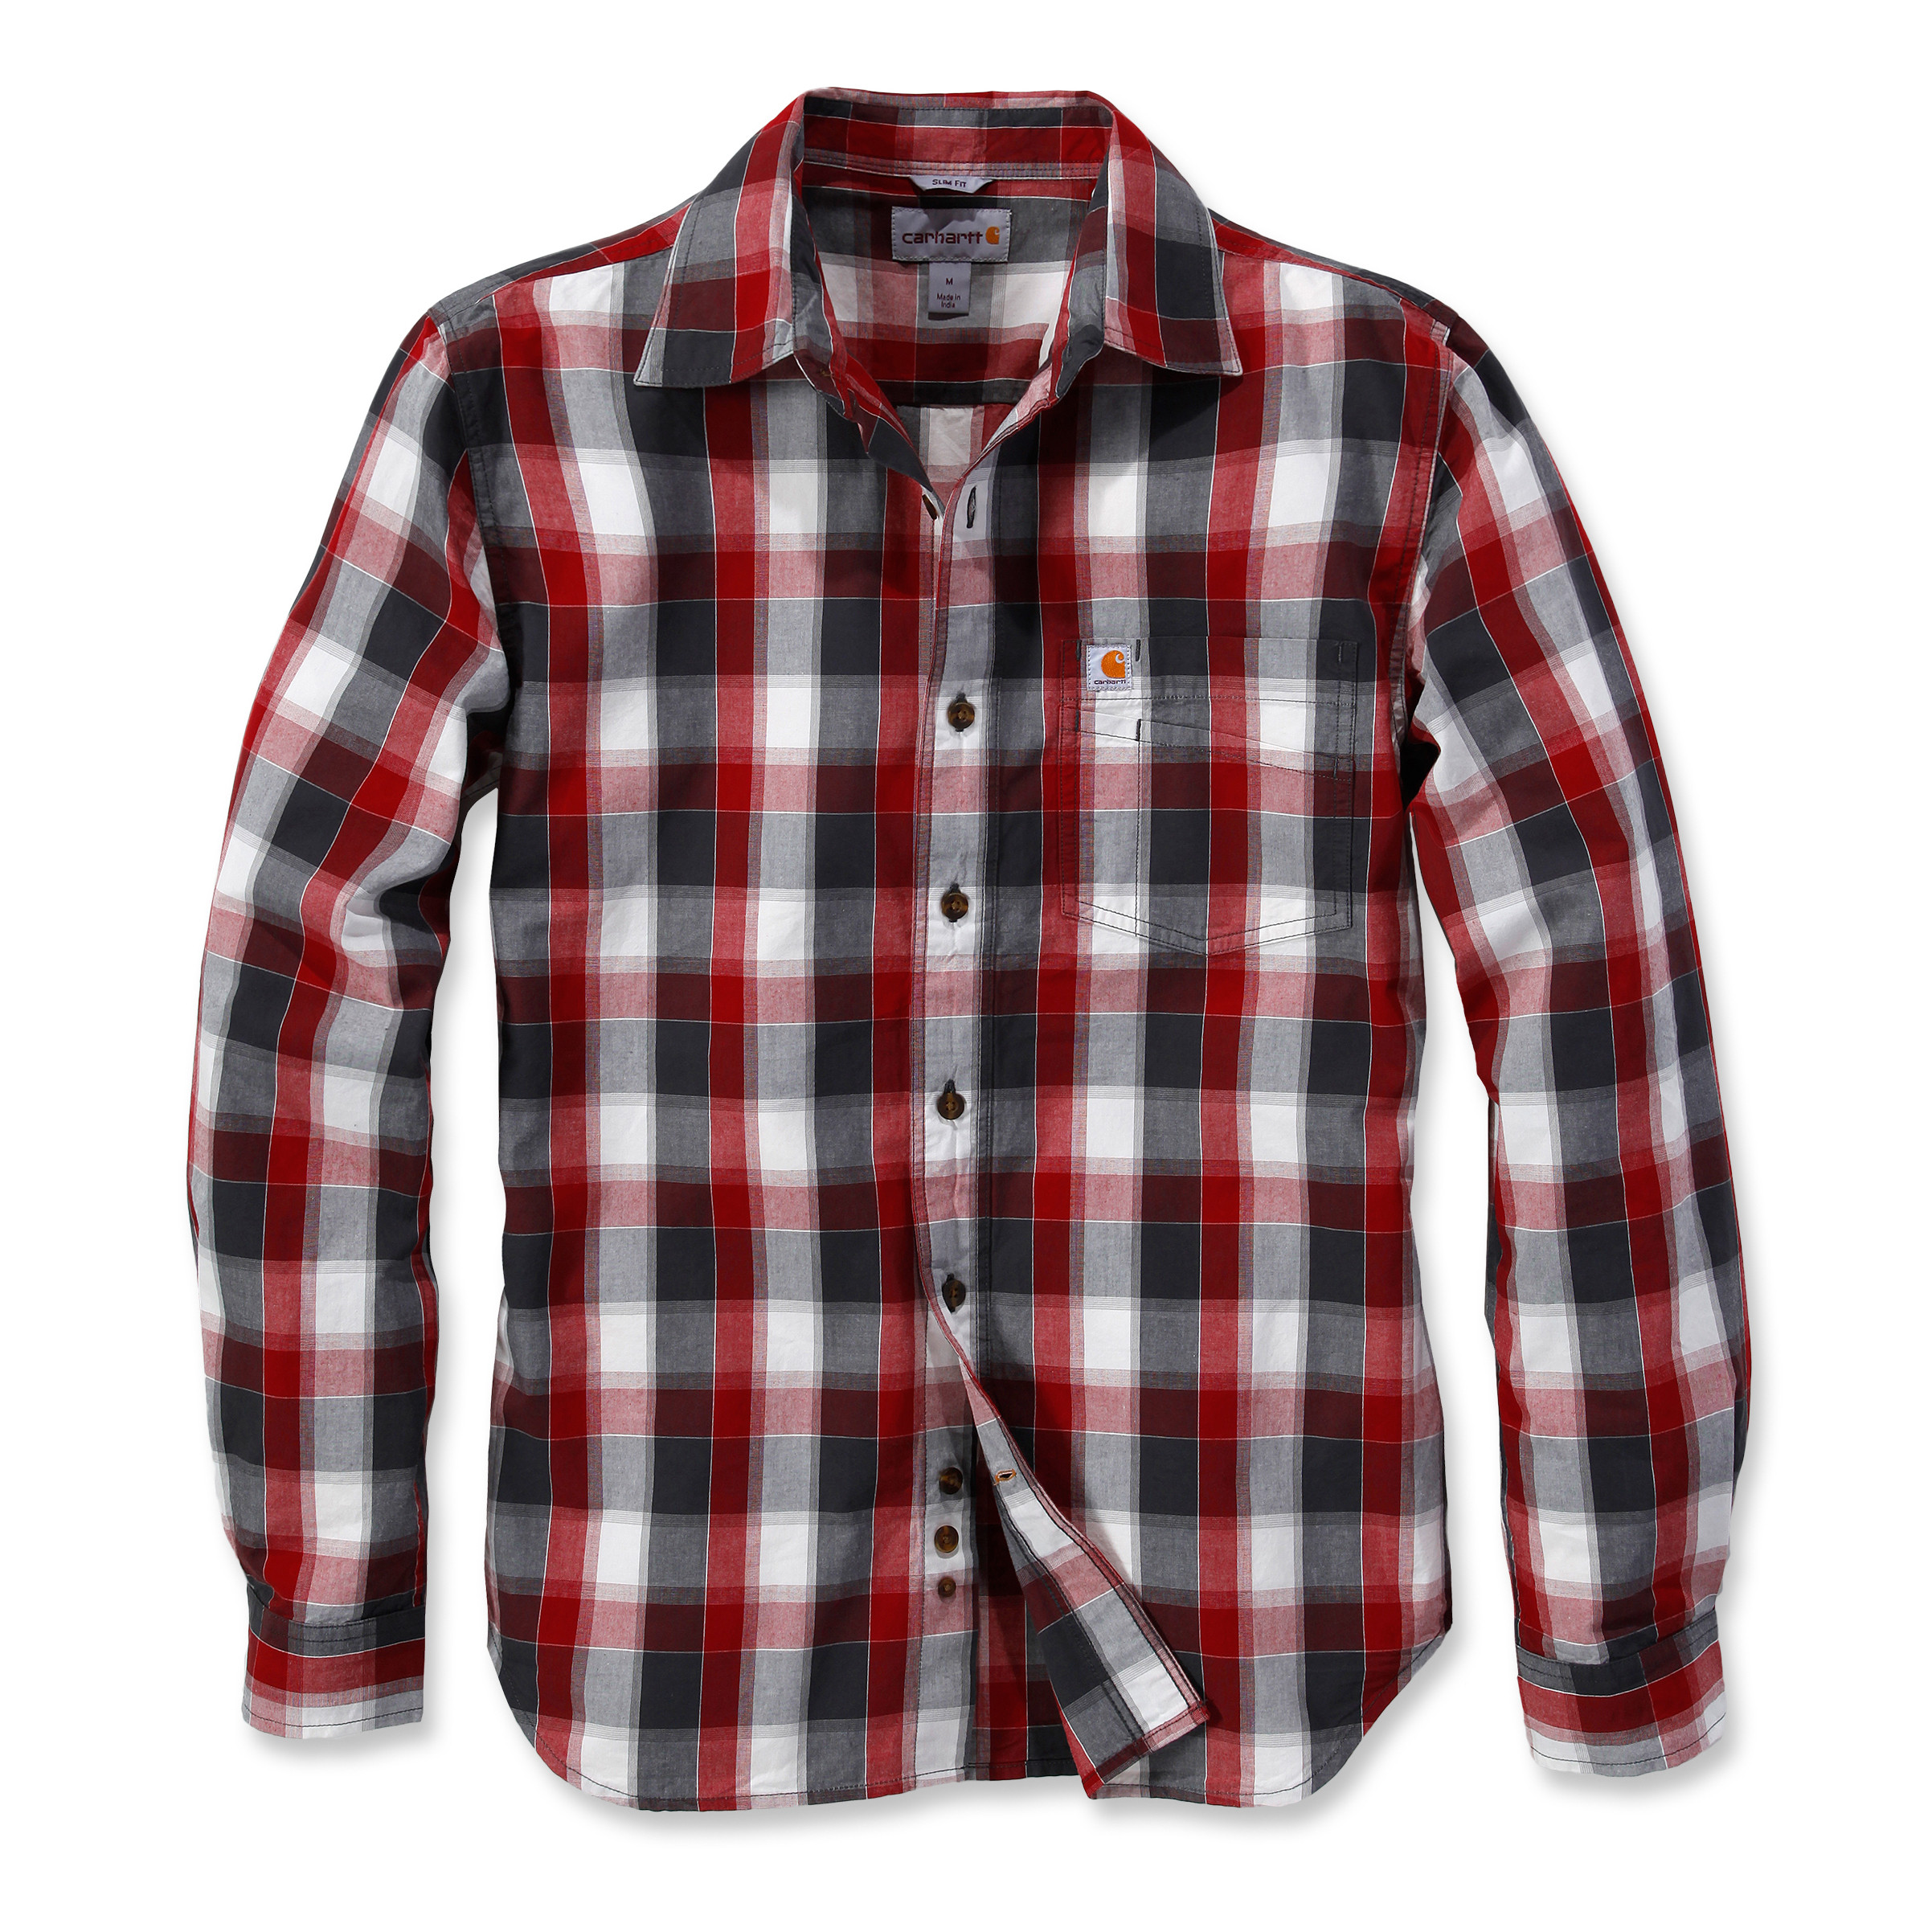 Рубашка Carhartt Slim Fit Plaid Shirt L/S - 103190 (Dark Crimson, S)